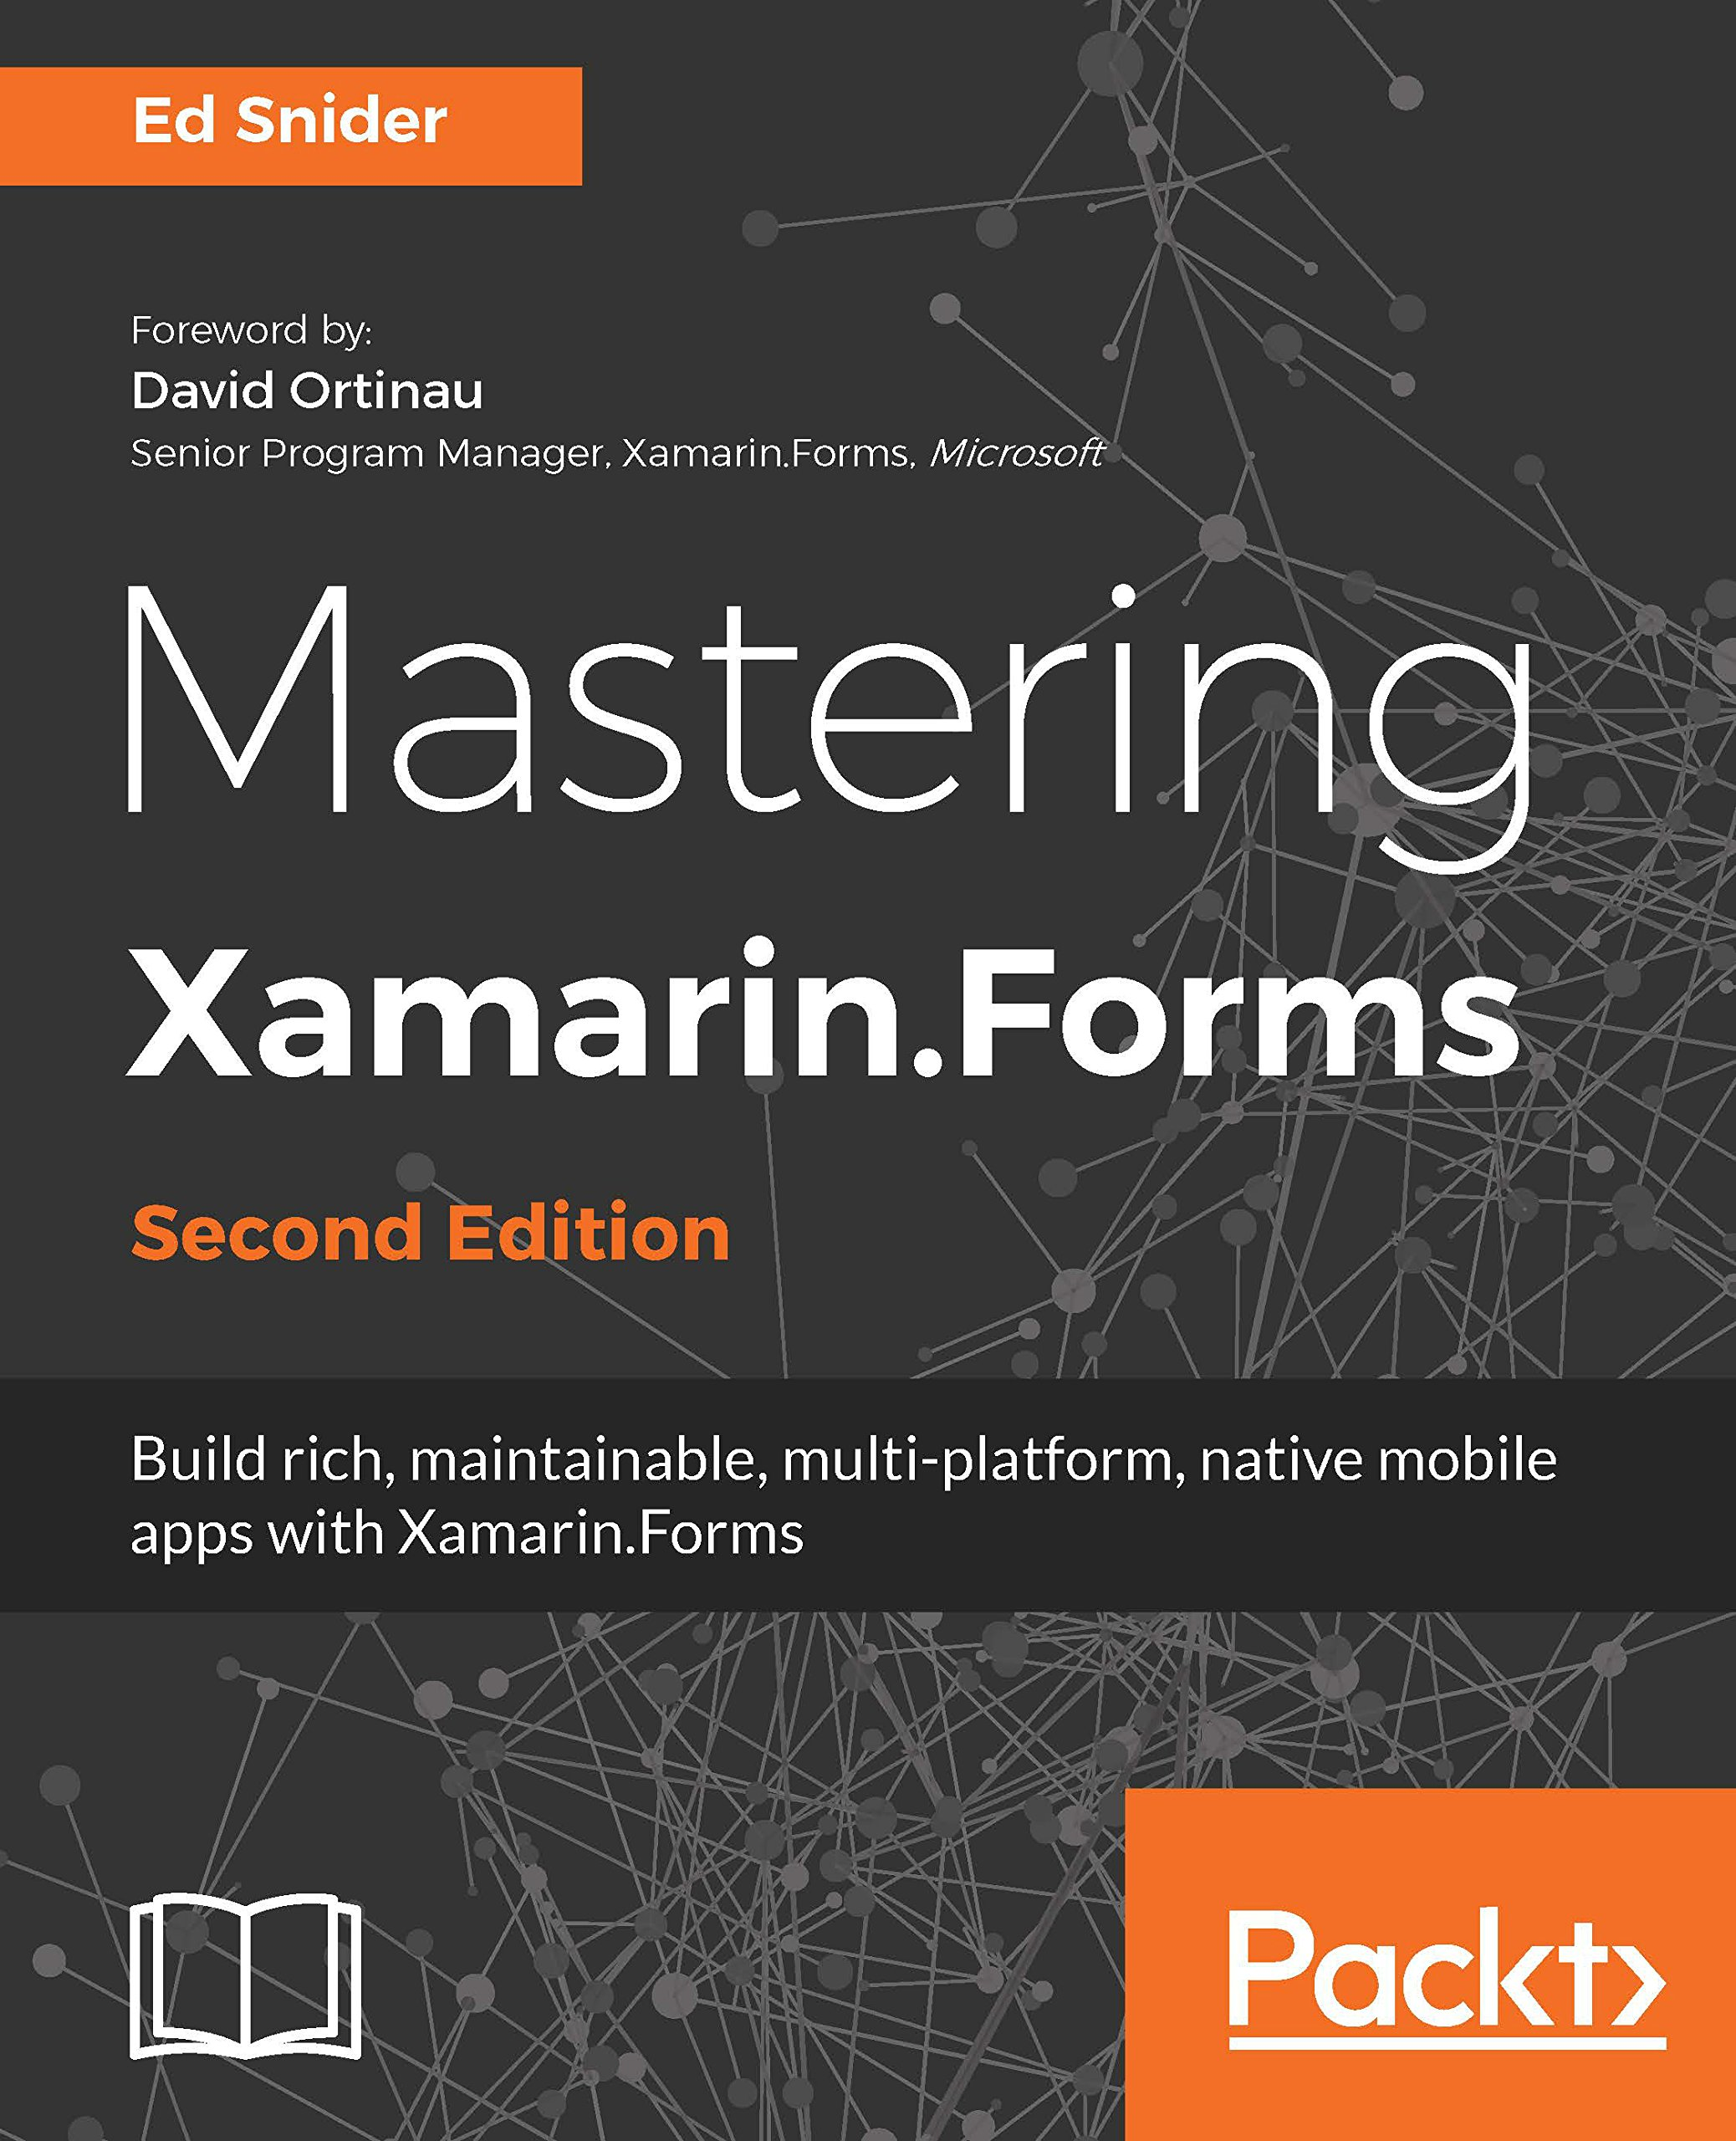 Mastering Xamarin.Forms - Second Edition:: Build rich, maintainable, multi-platform, native mobile apps with Xamarin.Forms, 2nd Edition